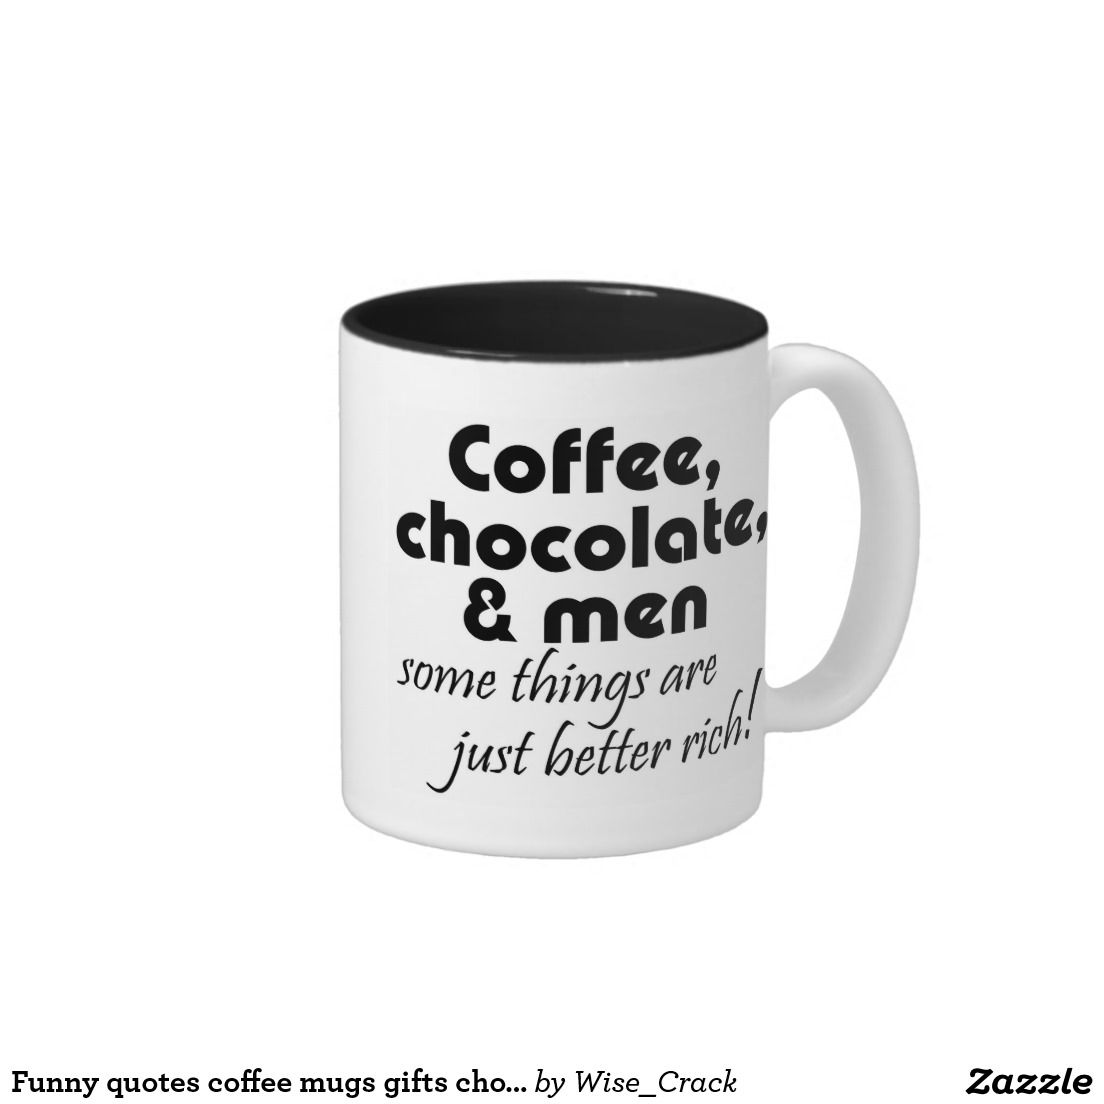 Lovely Funny Quotes Coffee Mugs Gifts Chocolate Jokes